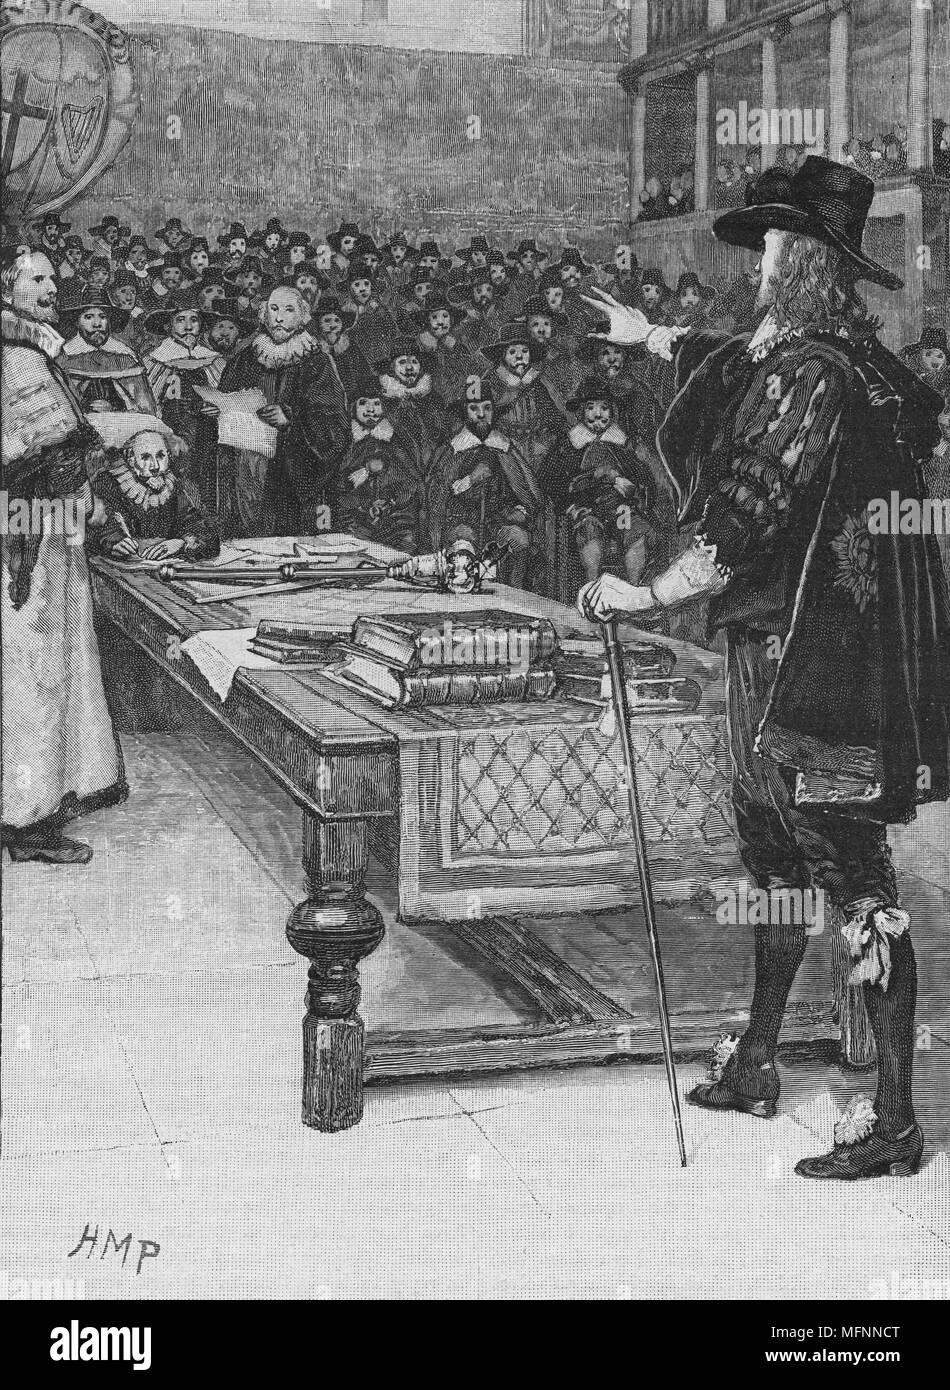 Trial of Charles I, January 1649. Charles ! (1600-1649) king of Great Britain and Ireland from 1625 on trial by Parliament in Westminster Hall, London. Charles, as an absolute monarch, did not accept the authority of the court and his refusal to plead was construed as a guilty plea. - Stock Image